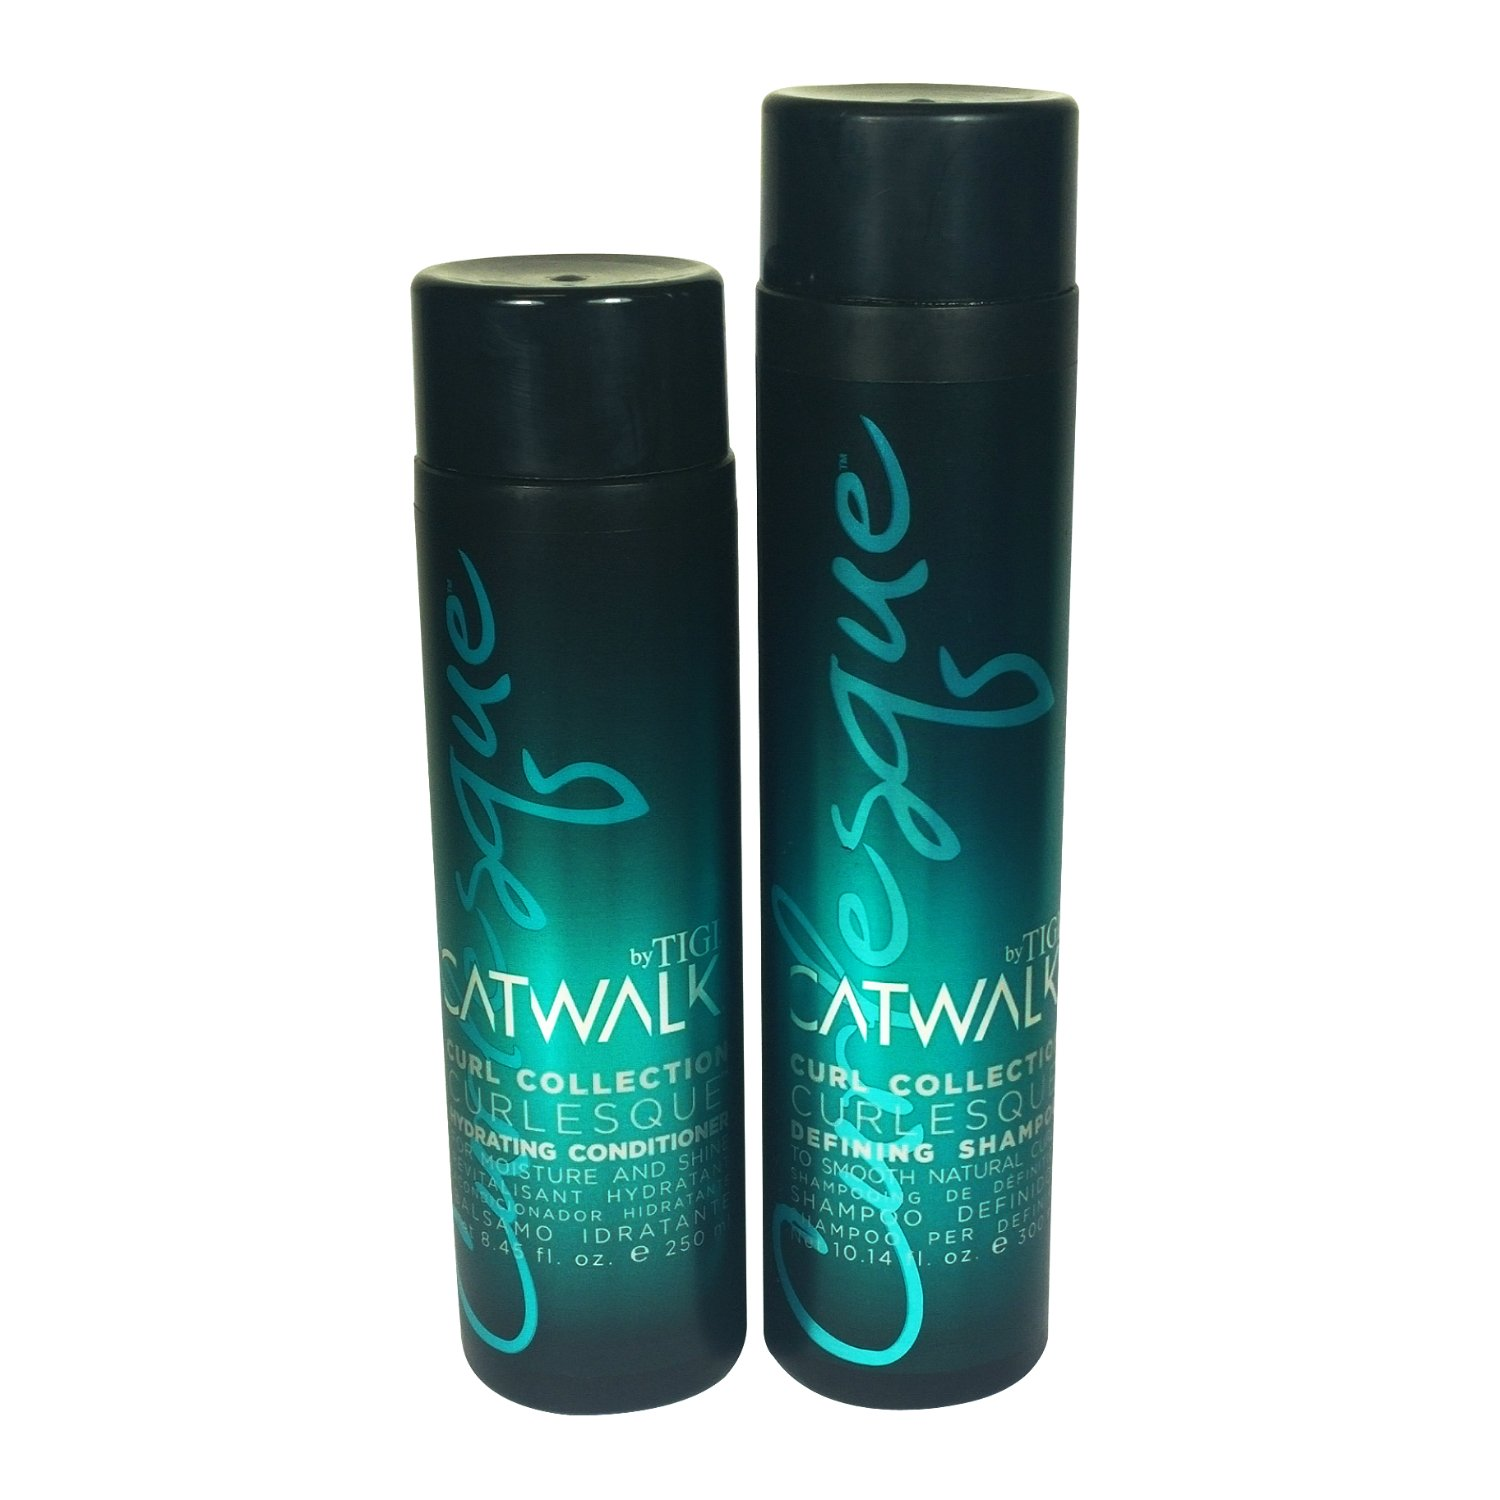 catwalk curl amplifier how to use